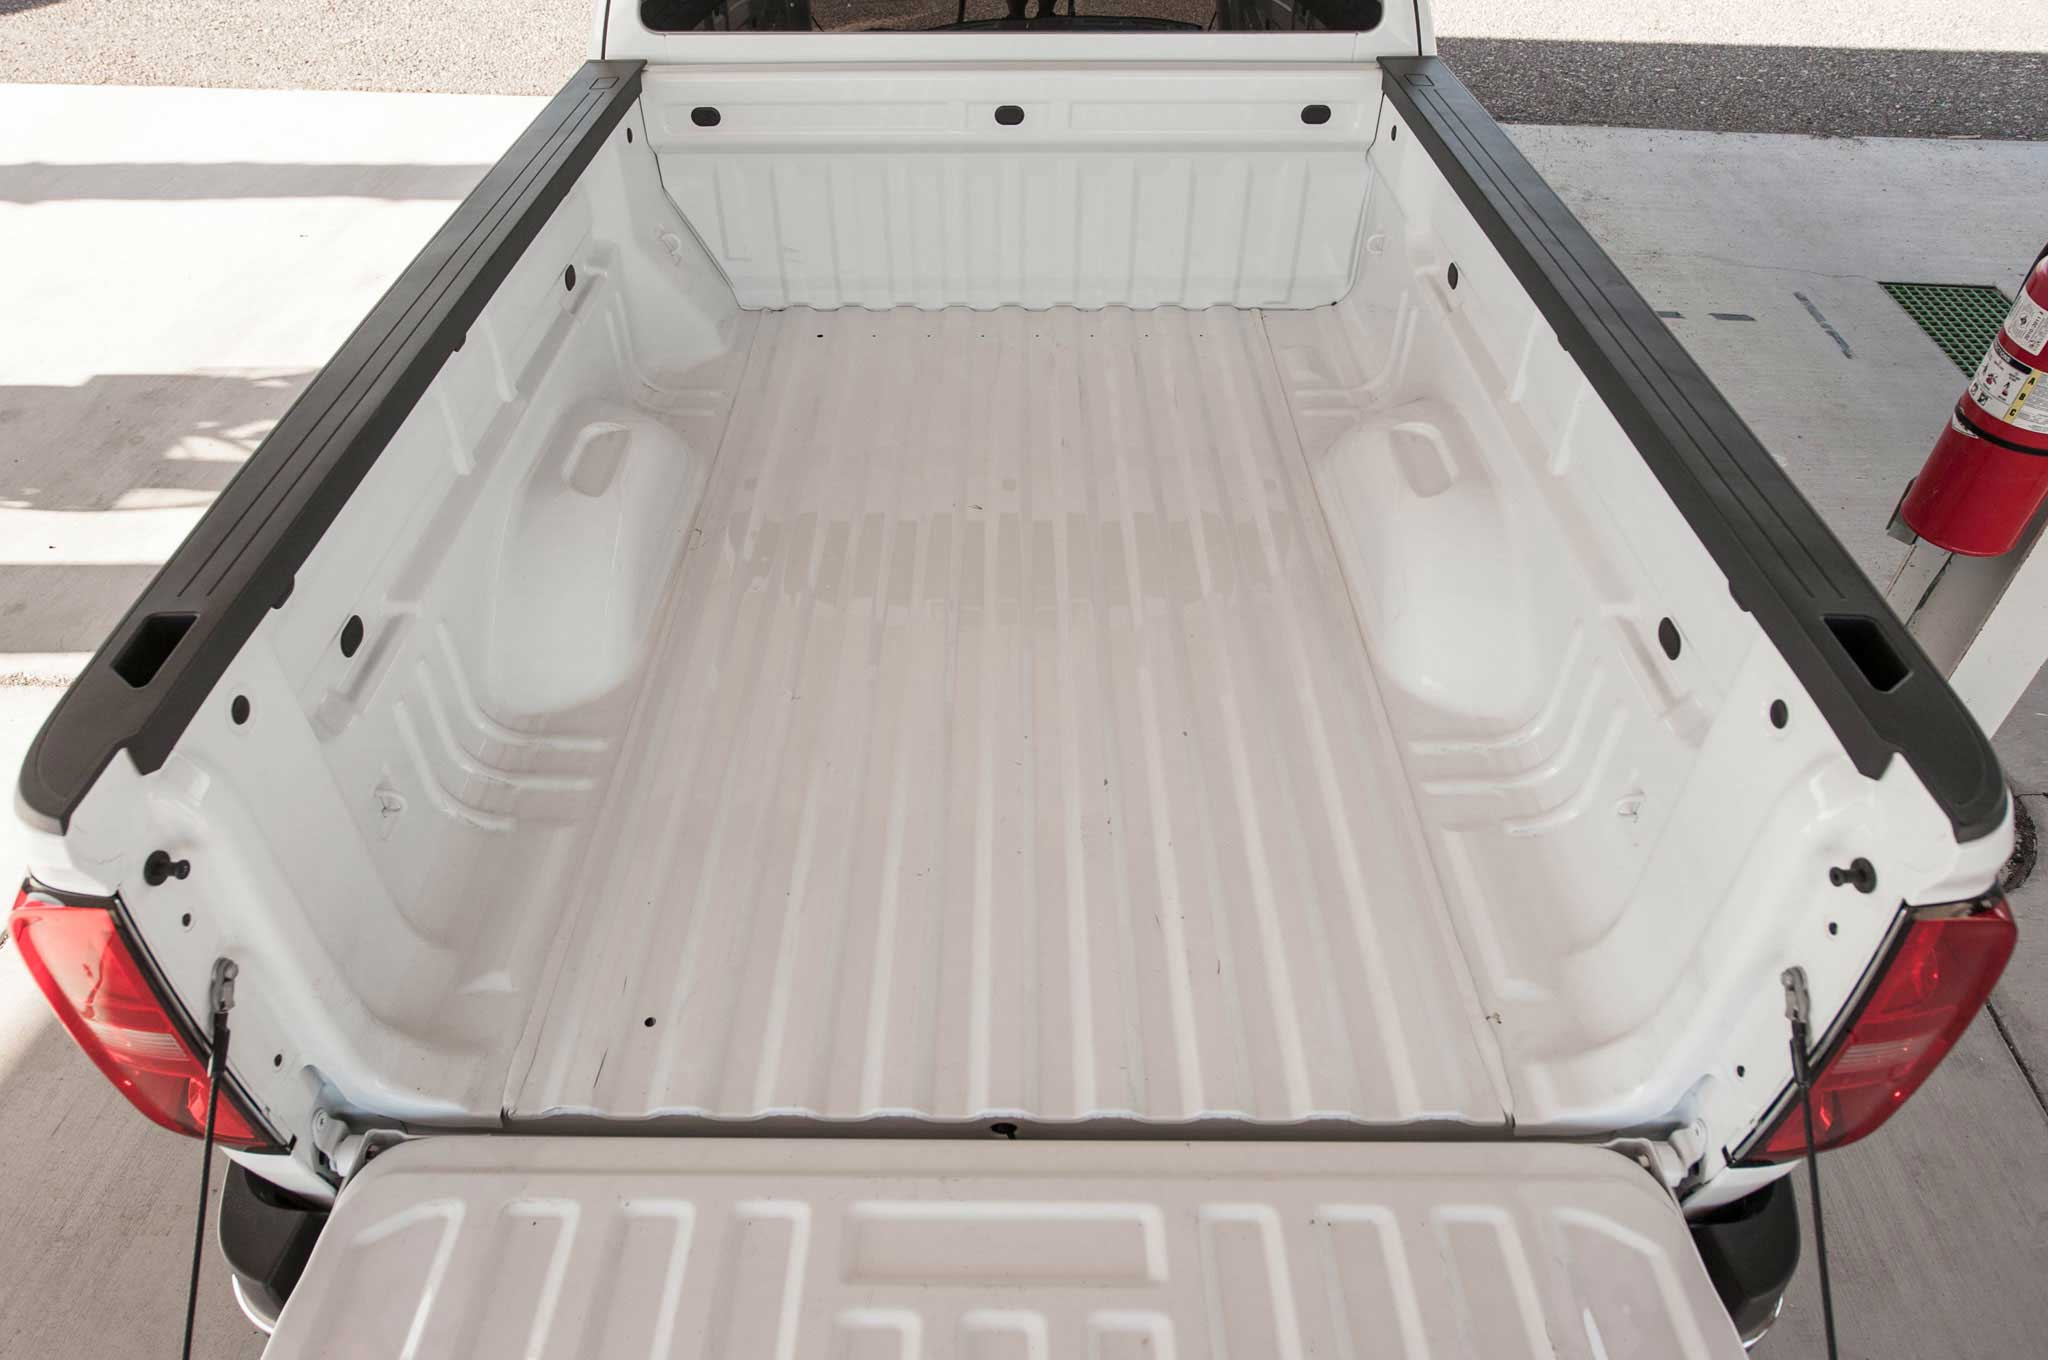 A photo of Chevy Colorado truck bed with a white bedliner